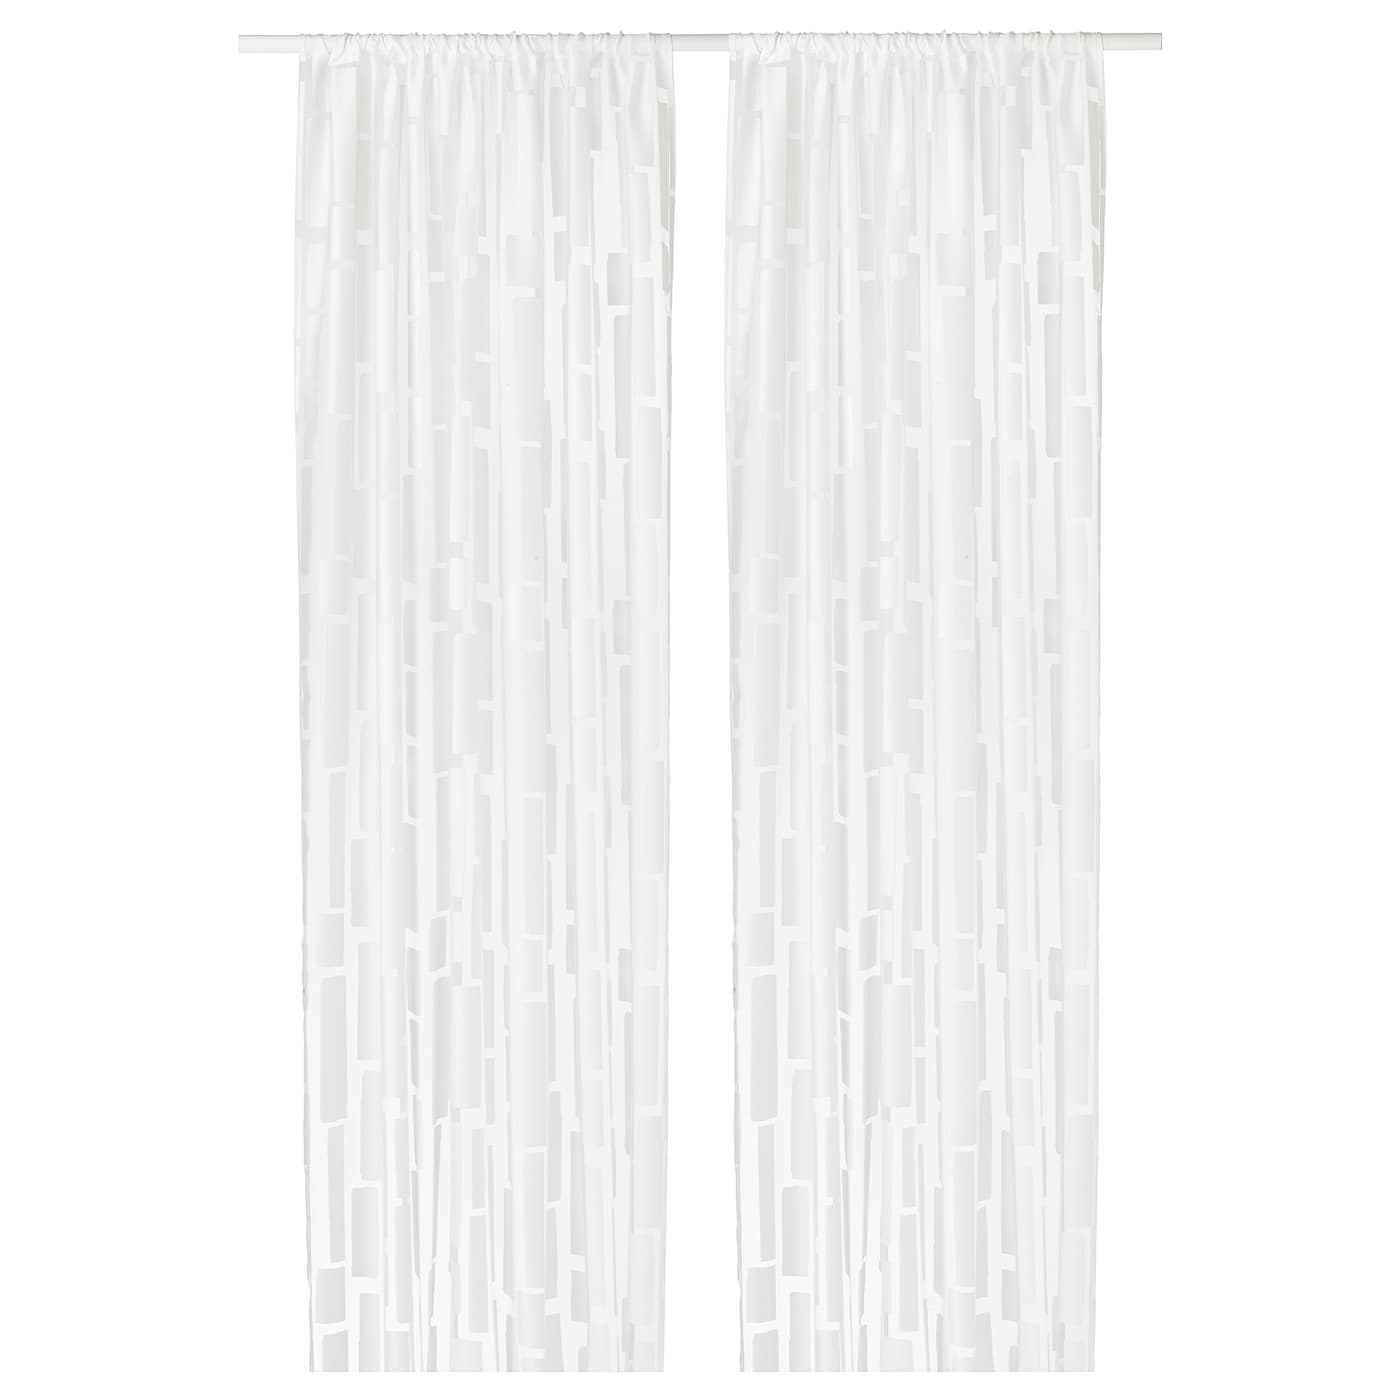 IKEA STRANDRÅG sheer curtains, 1 pair